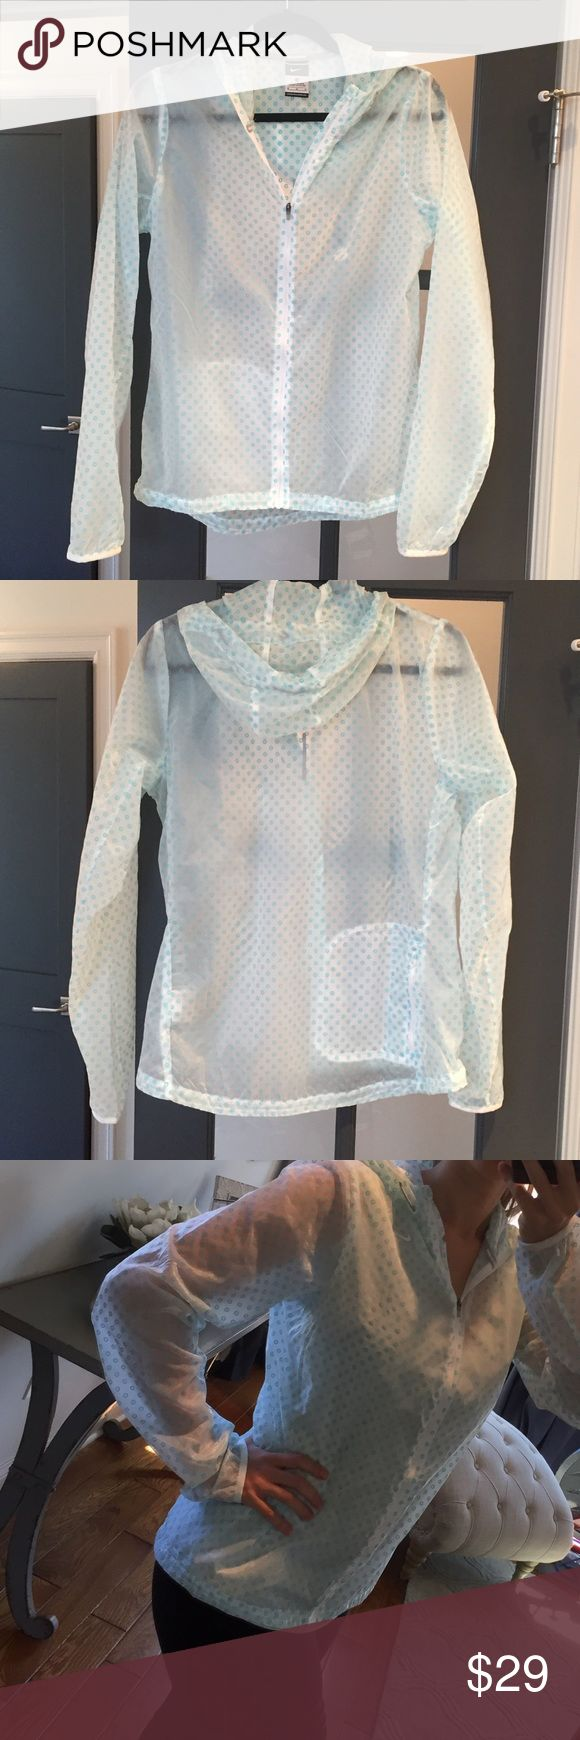 Nike running jacket Never worn! New without tags. Clear Nike running jacket with small blue circles. Circles are slightly raised and soft to the tough. Has drawstring hood and reflective stripe on back. No trades! Make an offer! Nike Jackets & Coats